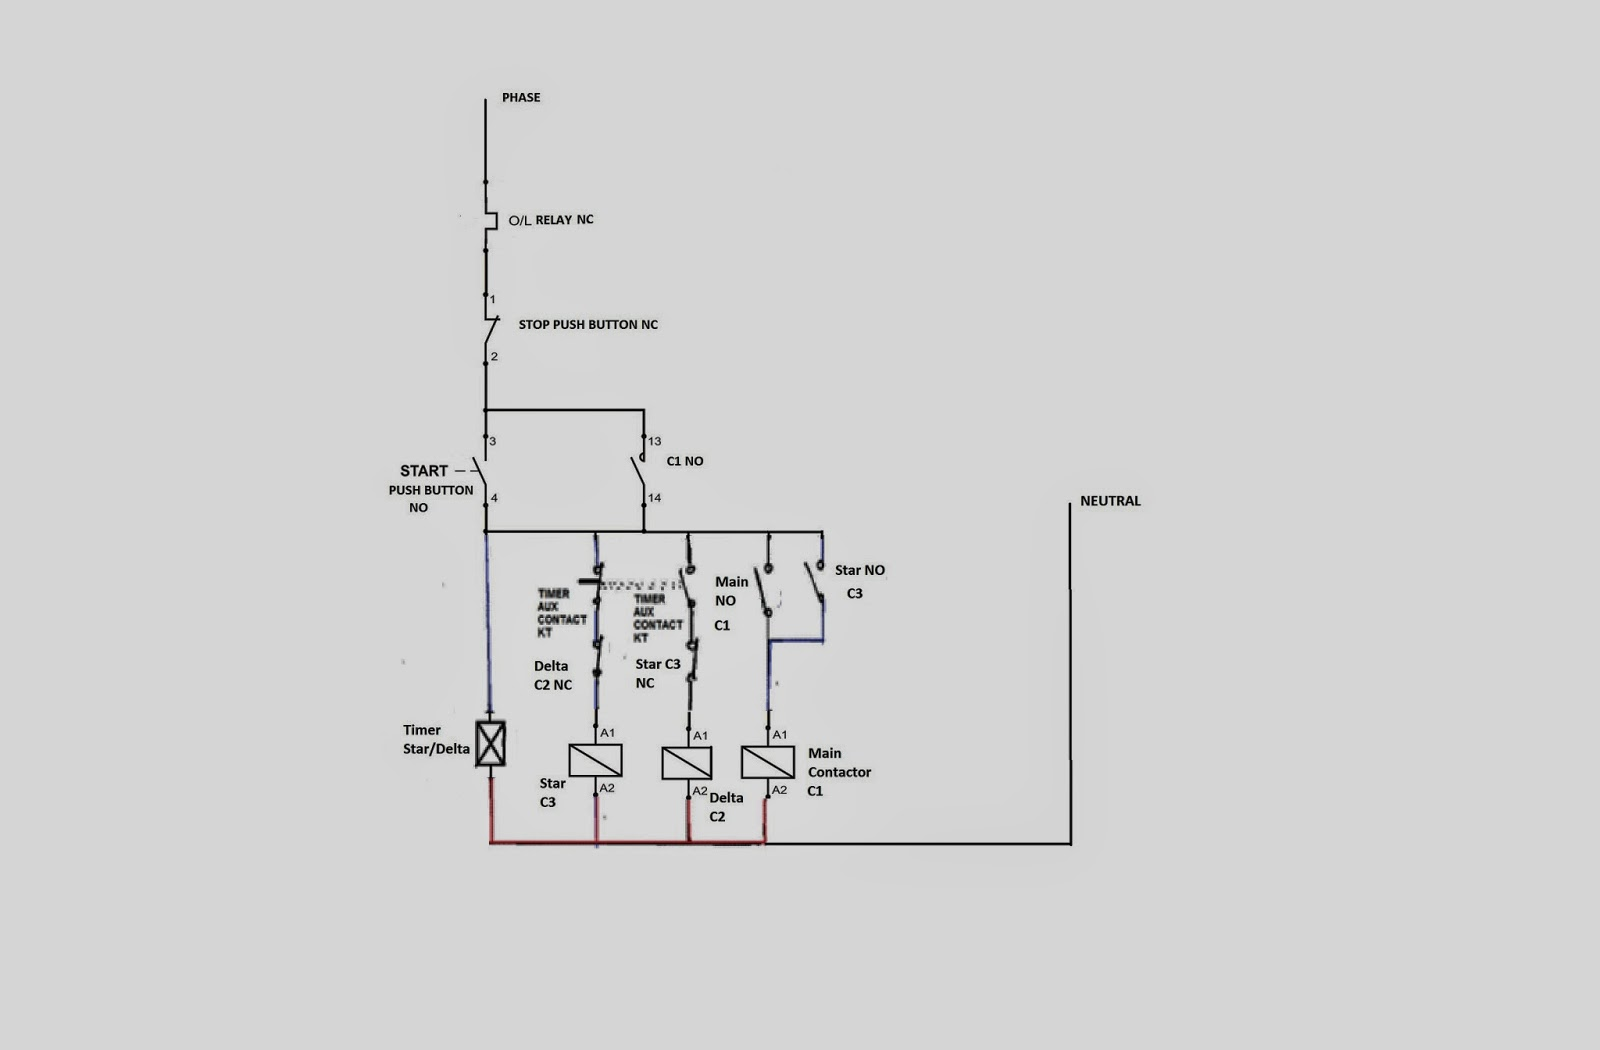 Induction Motor Delta Connection in addition 2 Pole Changeover Switch Wiring Diagram further Sujet581723 as well 15 Transformers Chapter 12 likewise TM 5 6115 593 34 374. on 3 pole phase